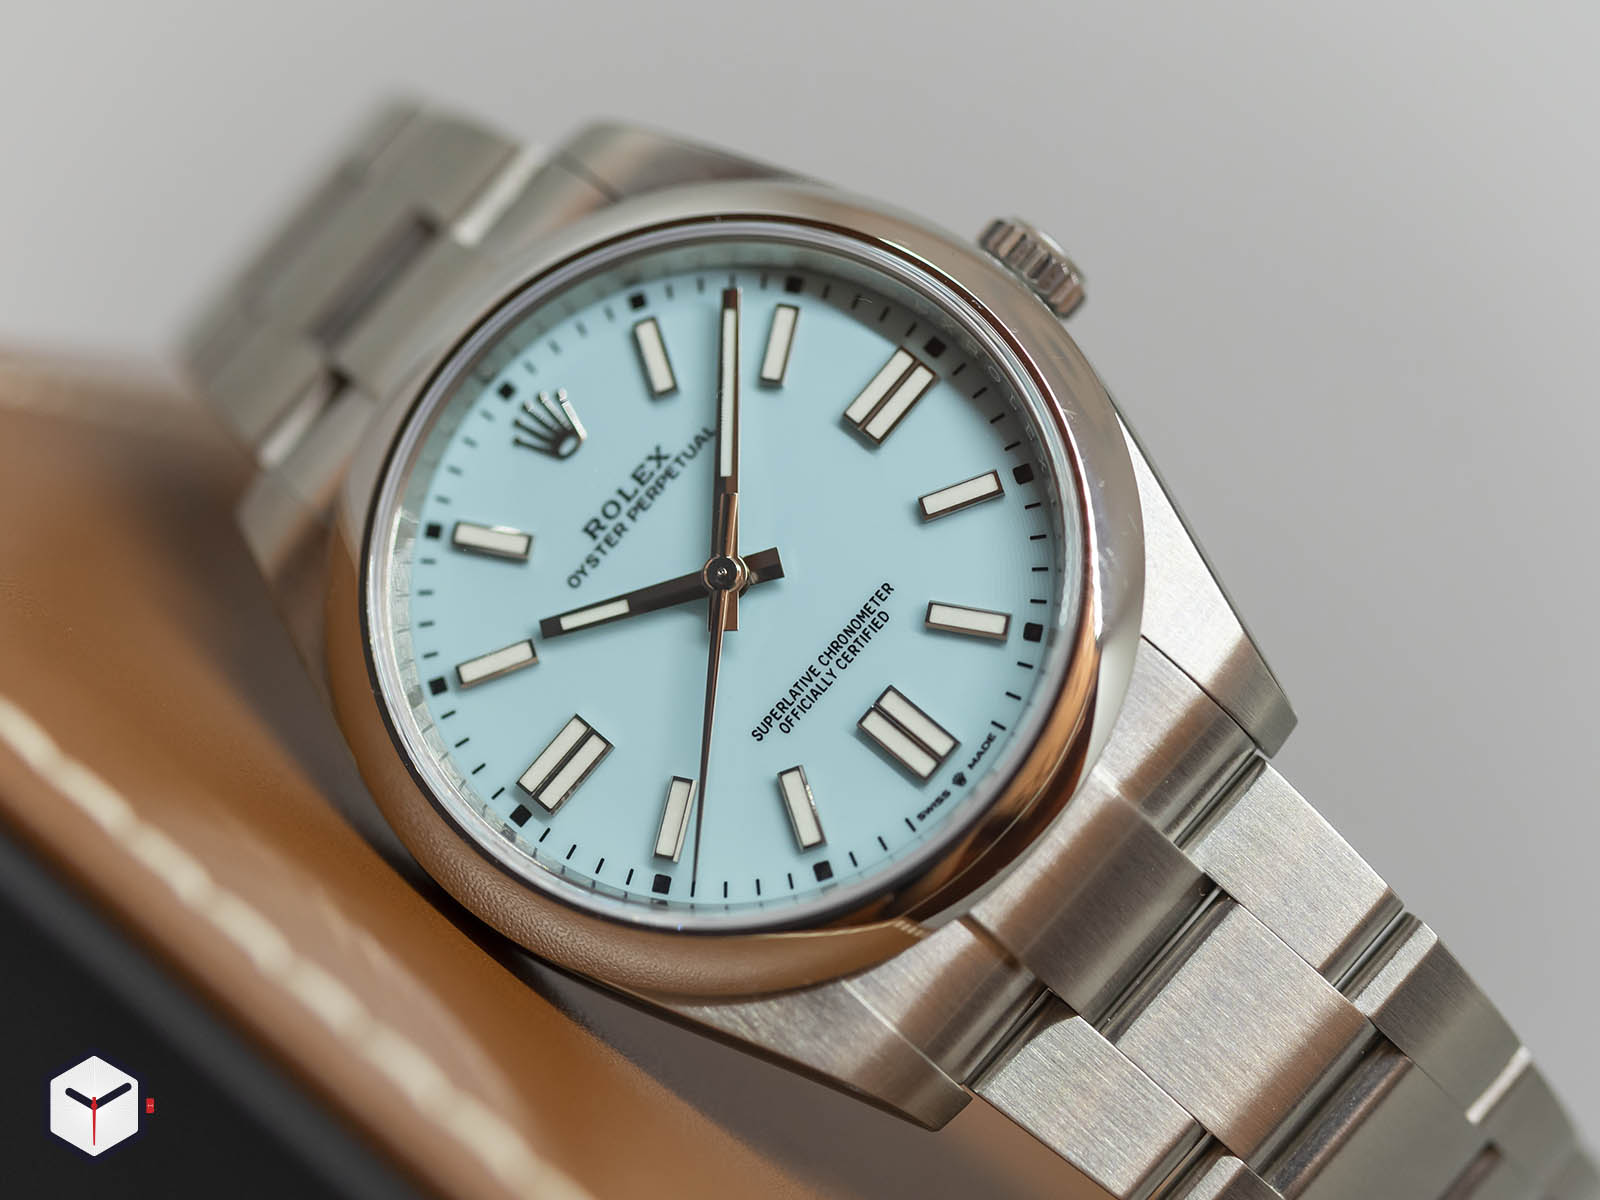 rolex-oyster-perpetual-36mm-2020-2.jpg